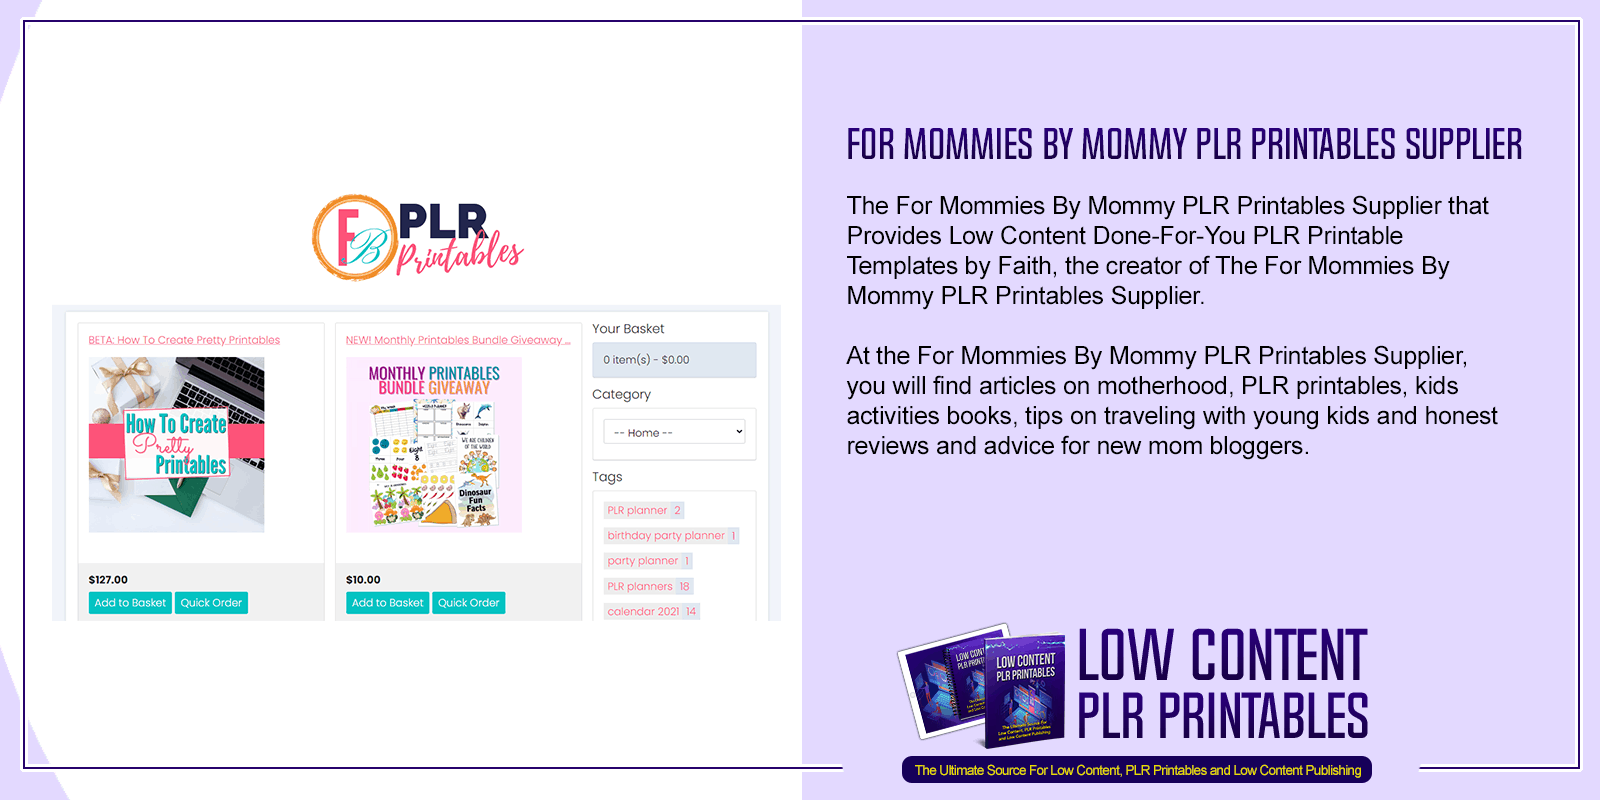 For Mommies By Mommy PLR Printables Supplier